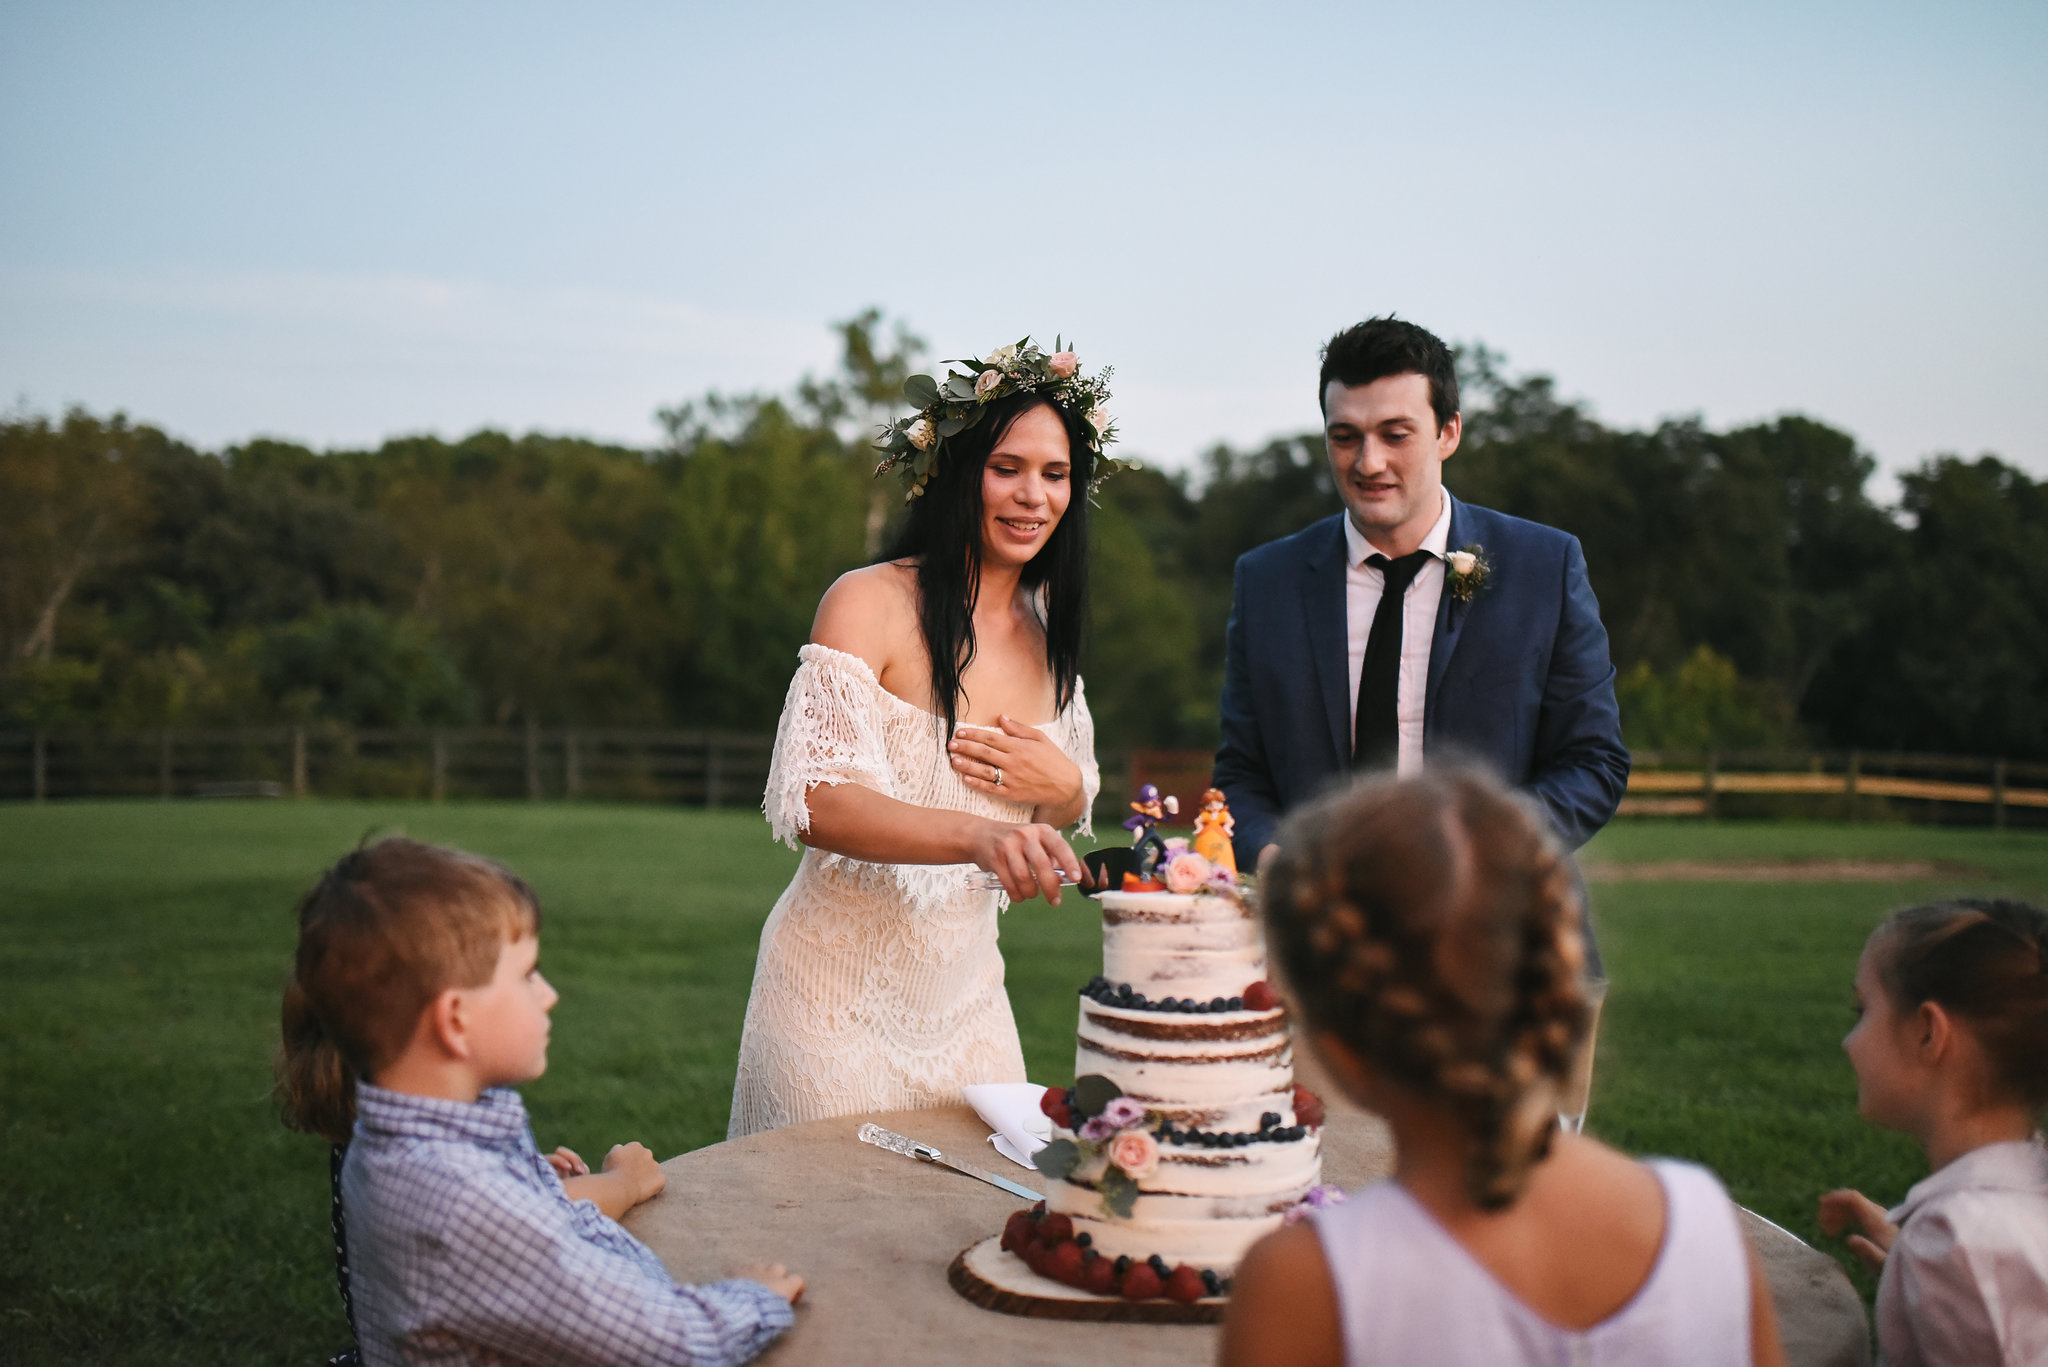 Maryland, Eastern Shore, Baltimore Wedding Photographer, Romantic, Boho, Backyard Wedding, Nature, Bride and Groom Cutting the Cake While Kids Watch, Honey Hive Bakery, Flower Crown, Outdoor Reception